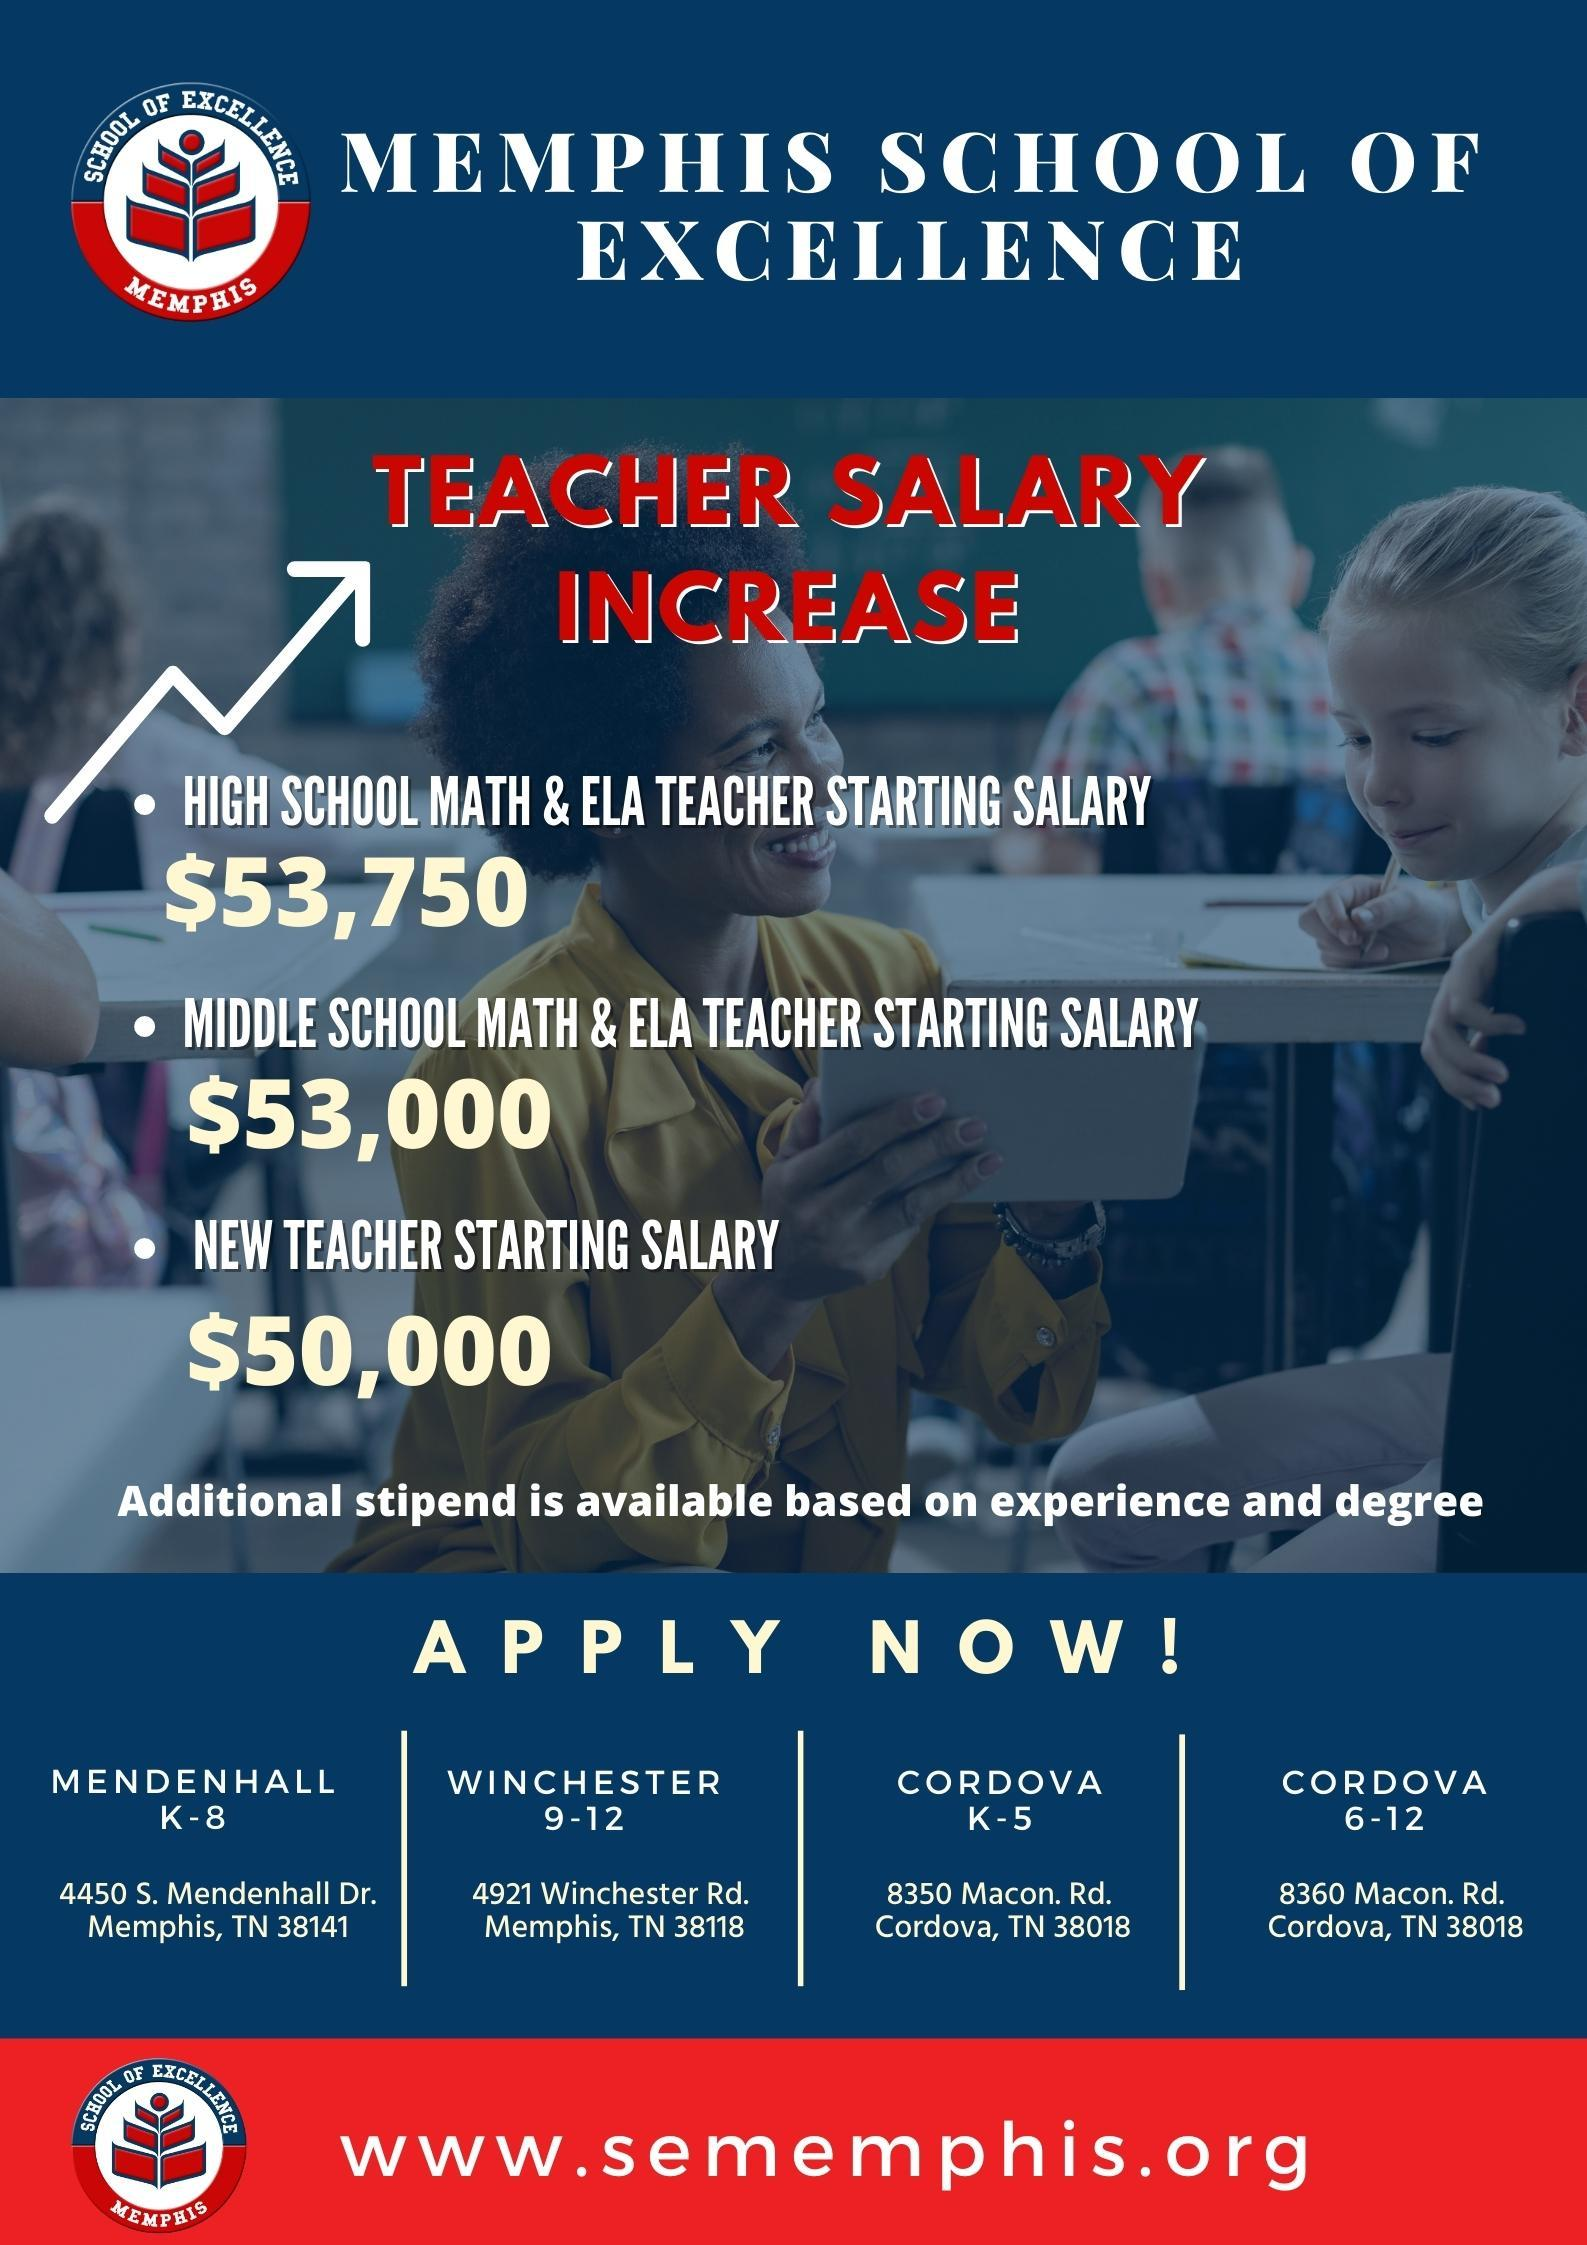 Salary Increase for 2021-22 School Year